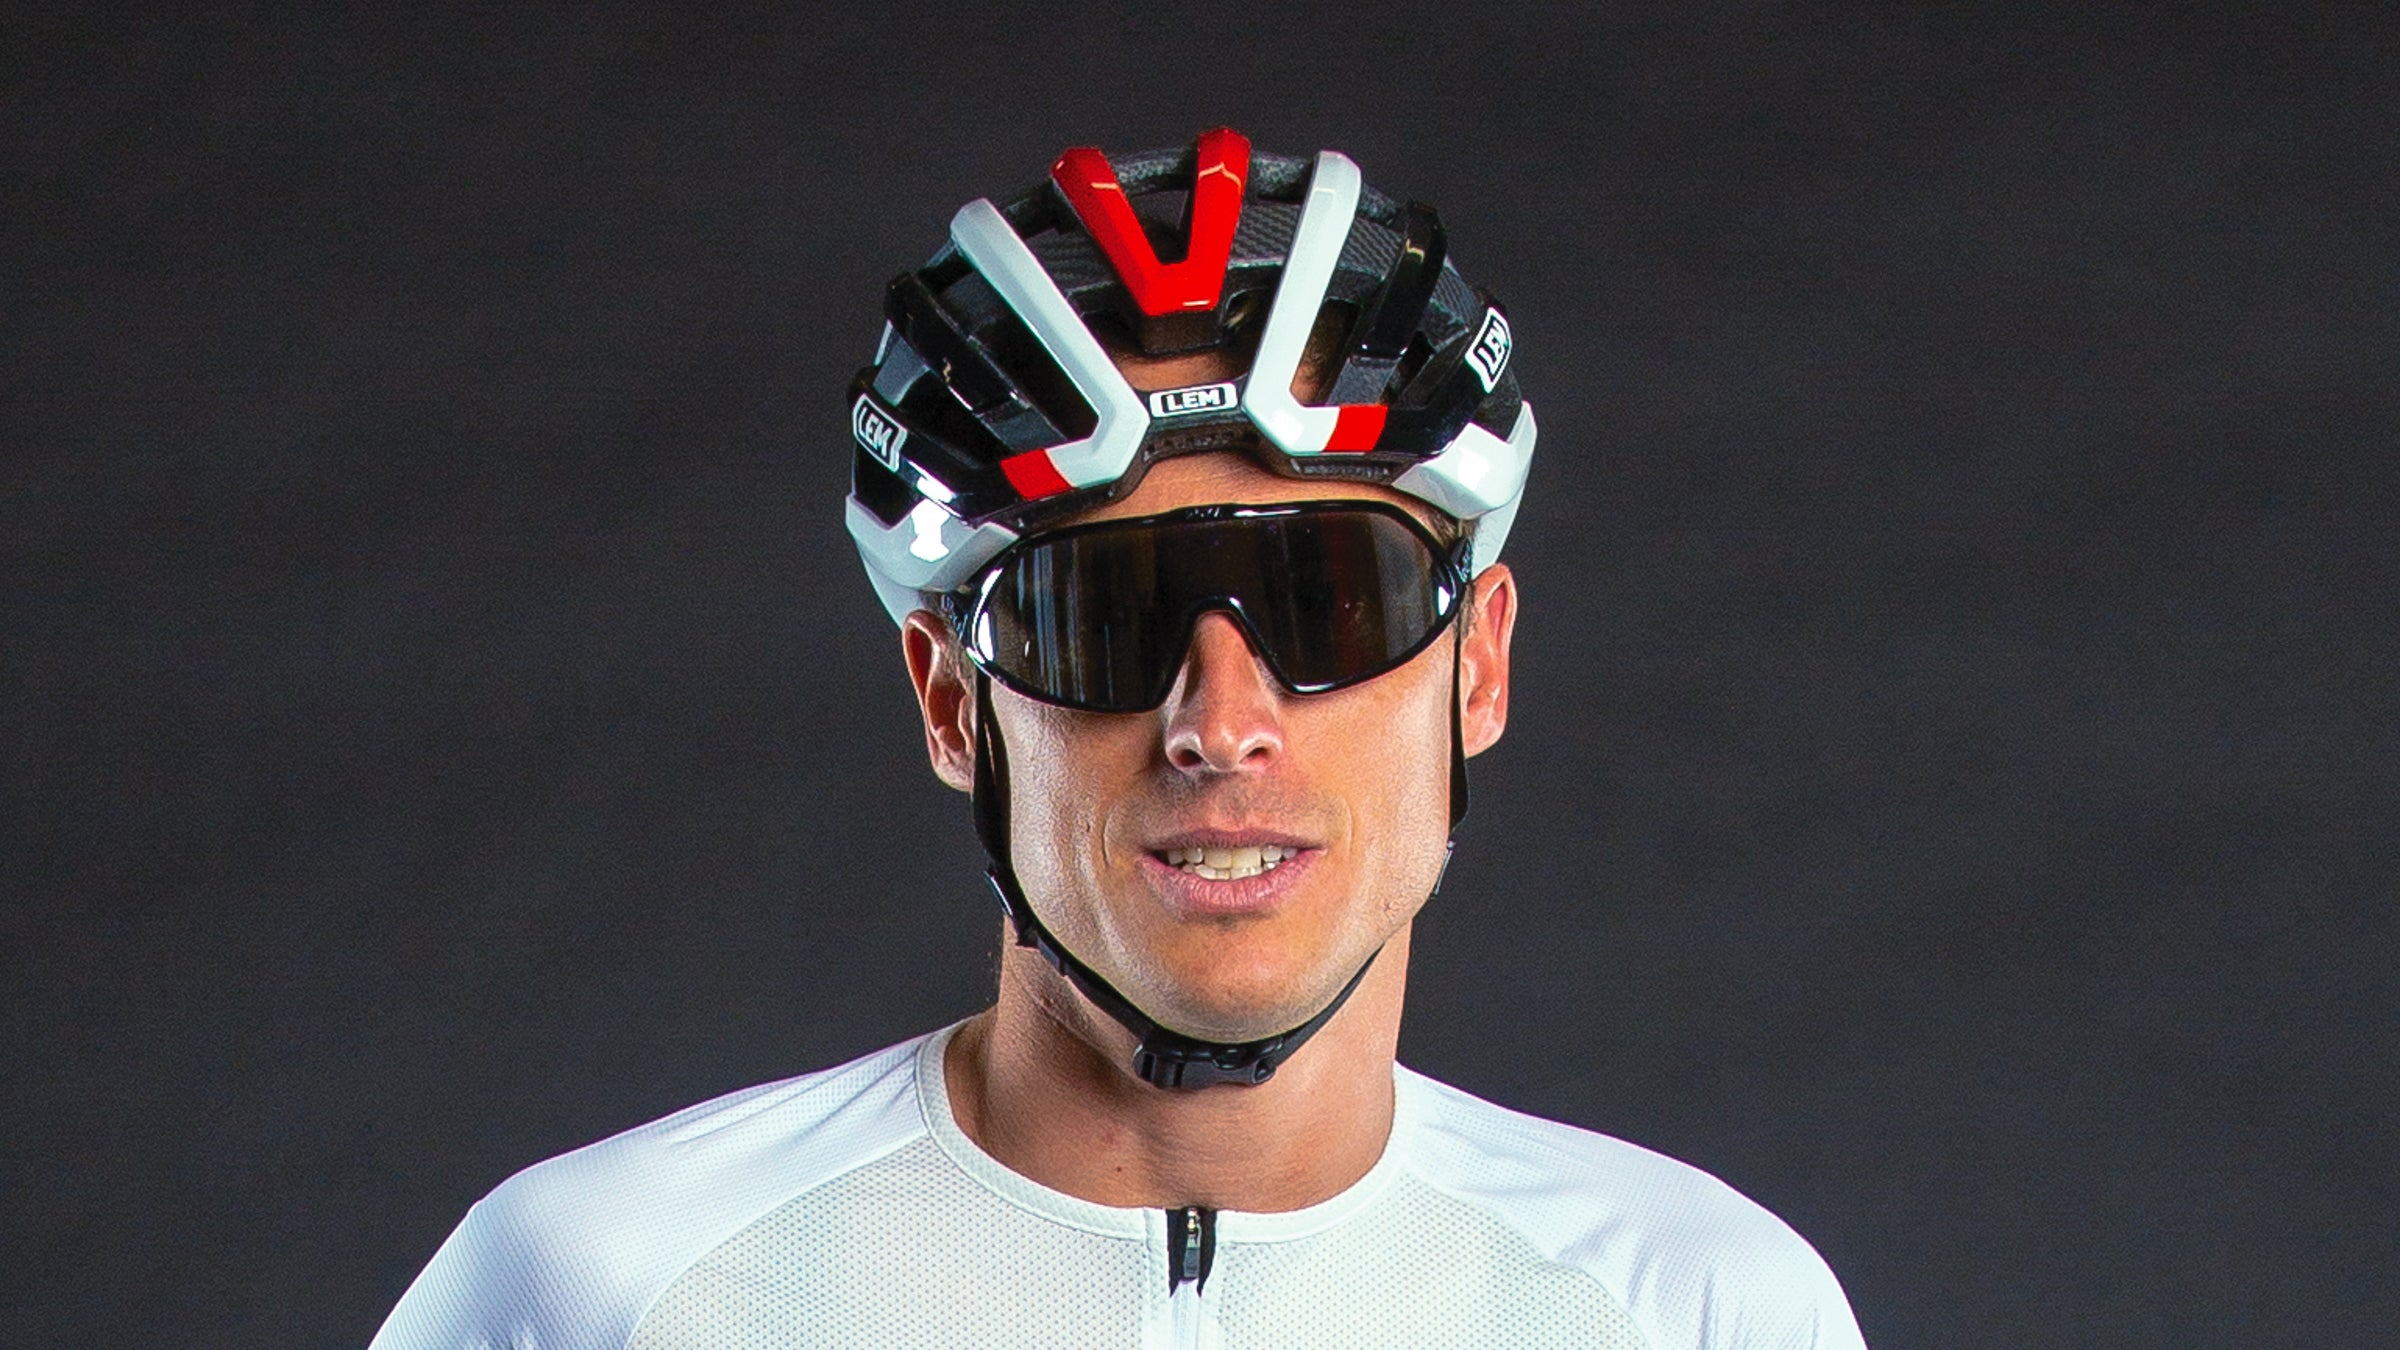 Close-up of man wearing cycling helmet and glasses.